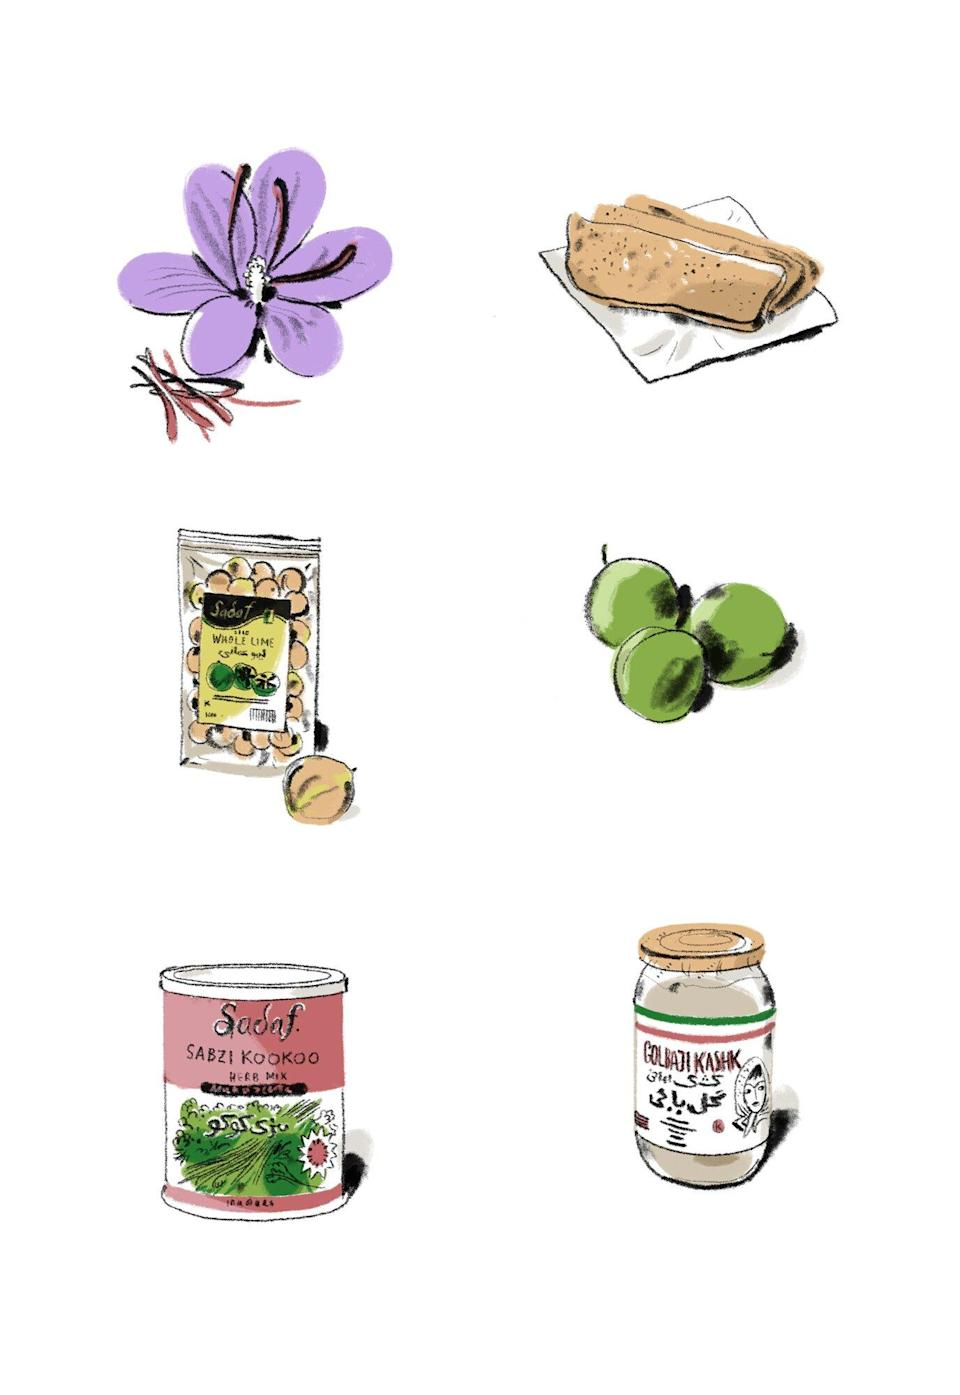 ingredient illustrations